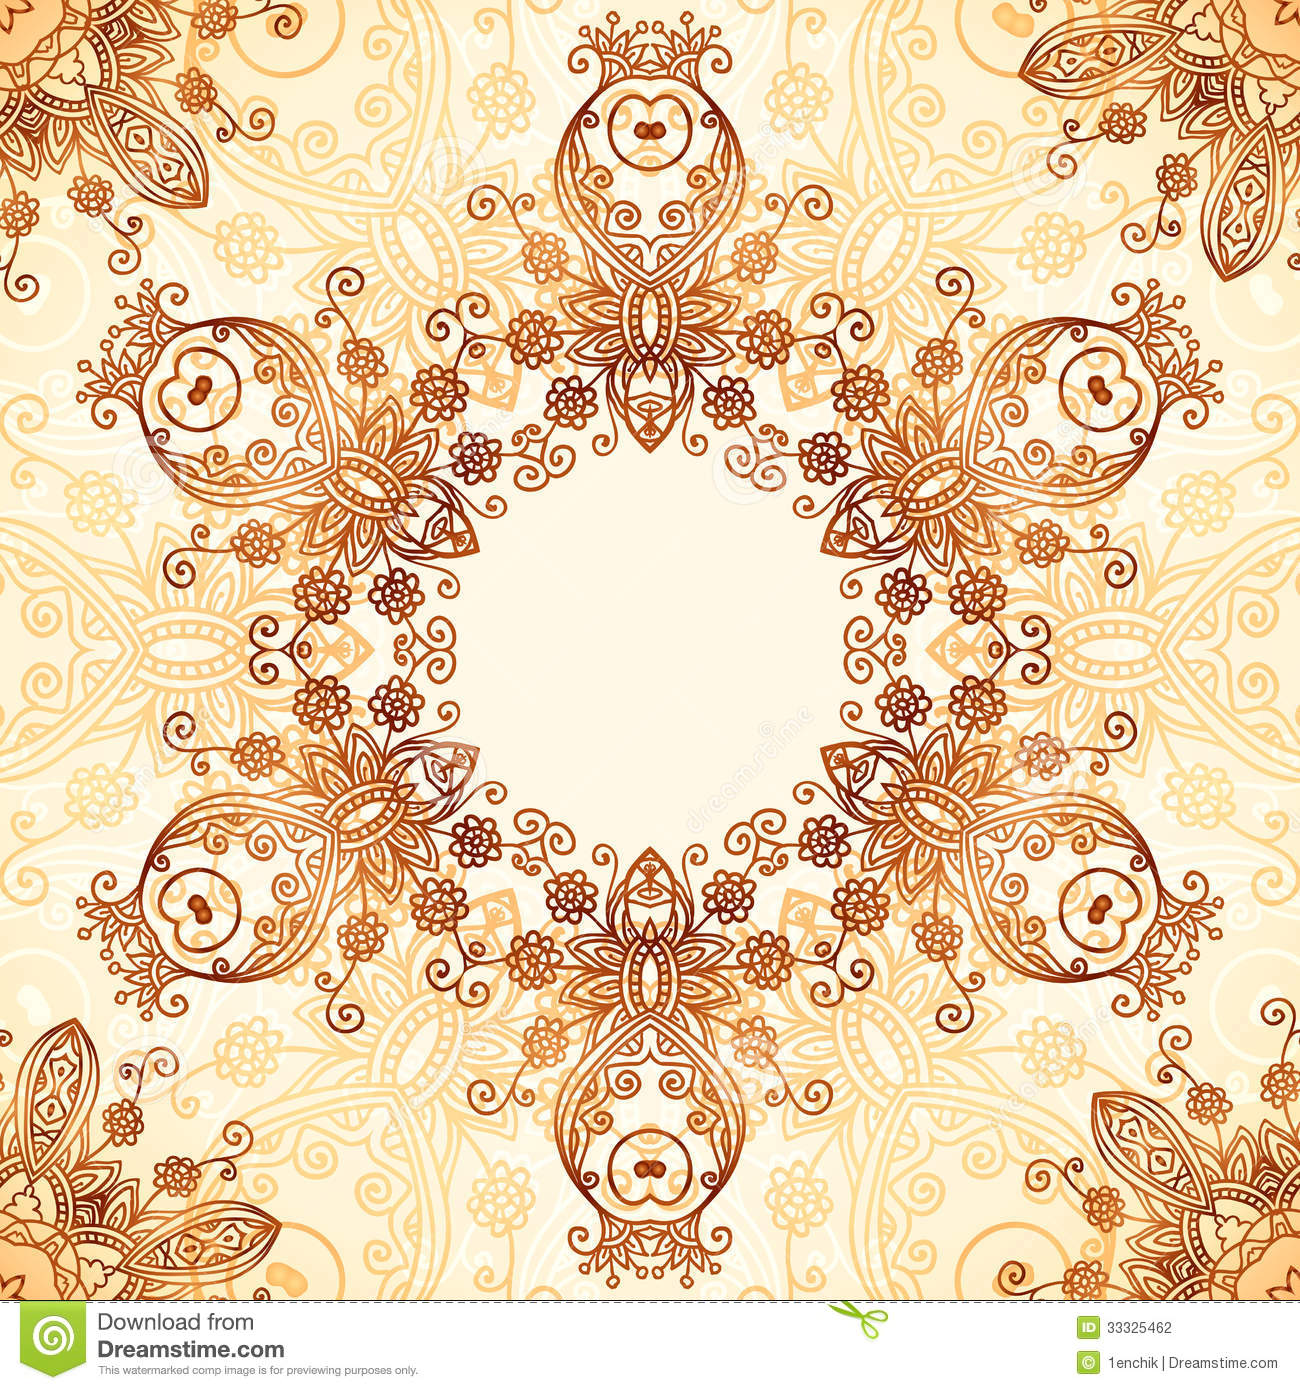 Mehndi Circle Vector : Ornate vintage circle pattern in mehndi style stock